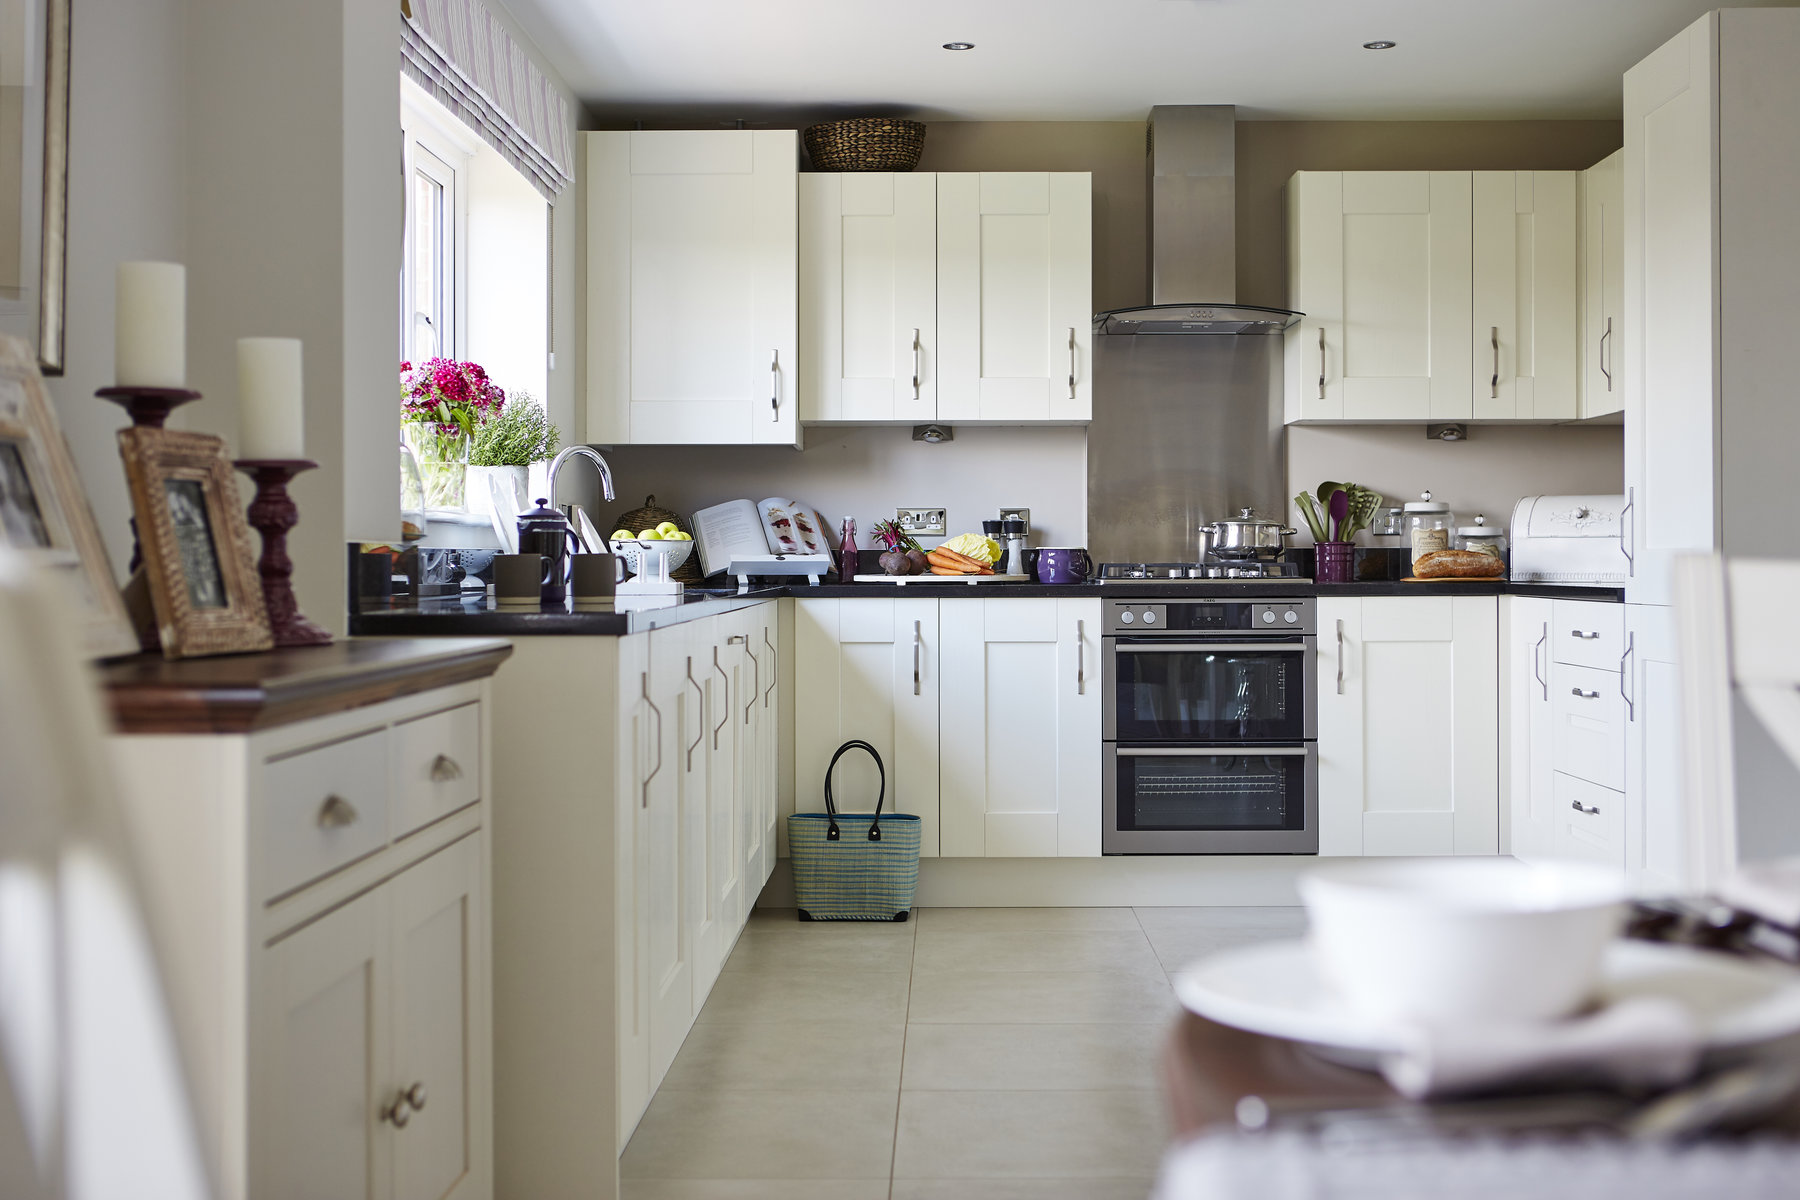 rsz_3tw_mids_burlington_fields_shifnal_pa48_shelford_kitchen_2